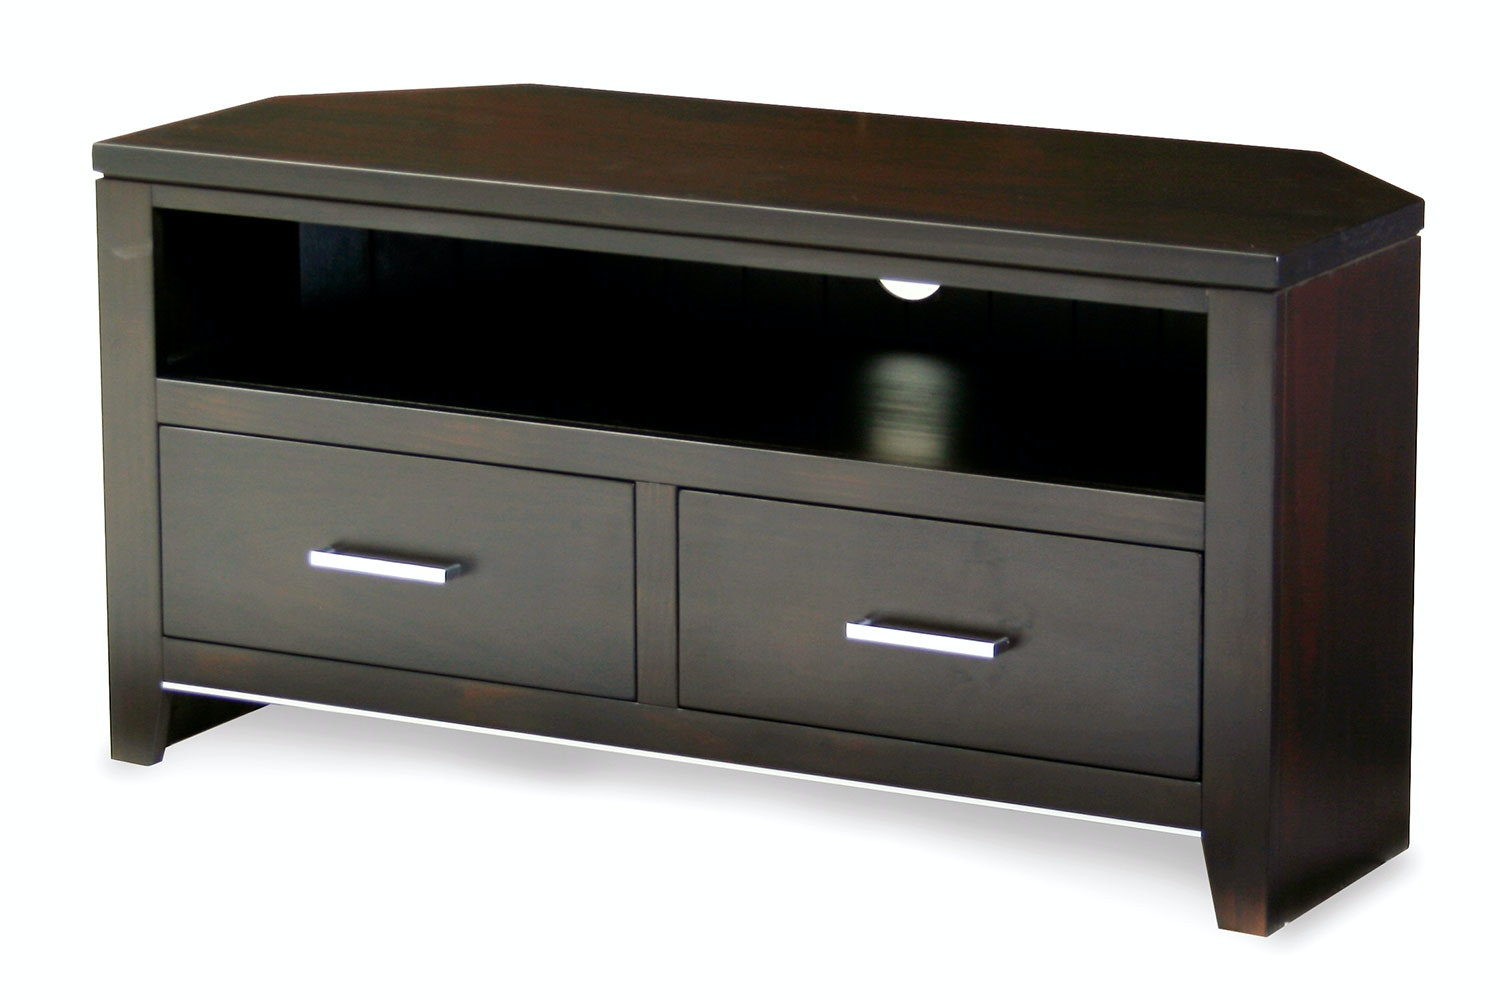 Metro Corner Entertainment Unit by Coastwood Furniture